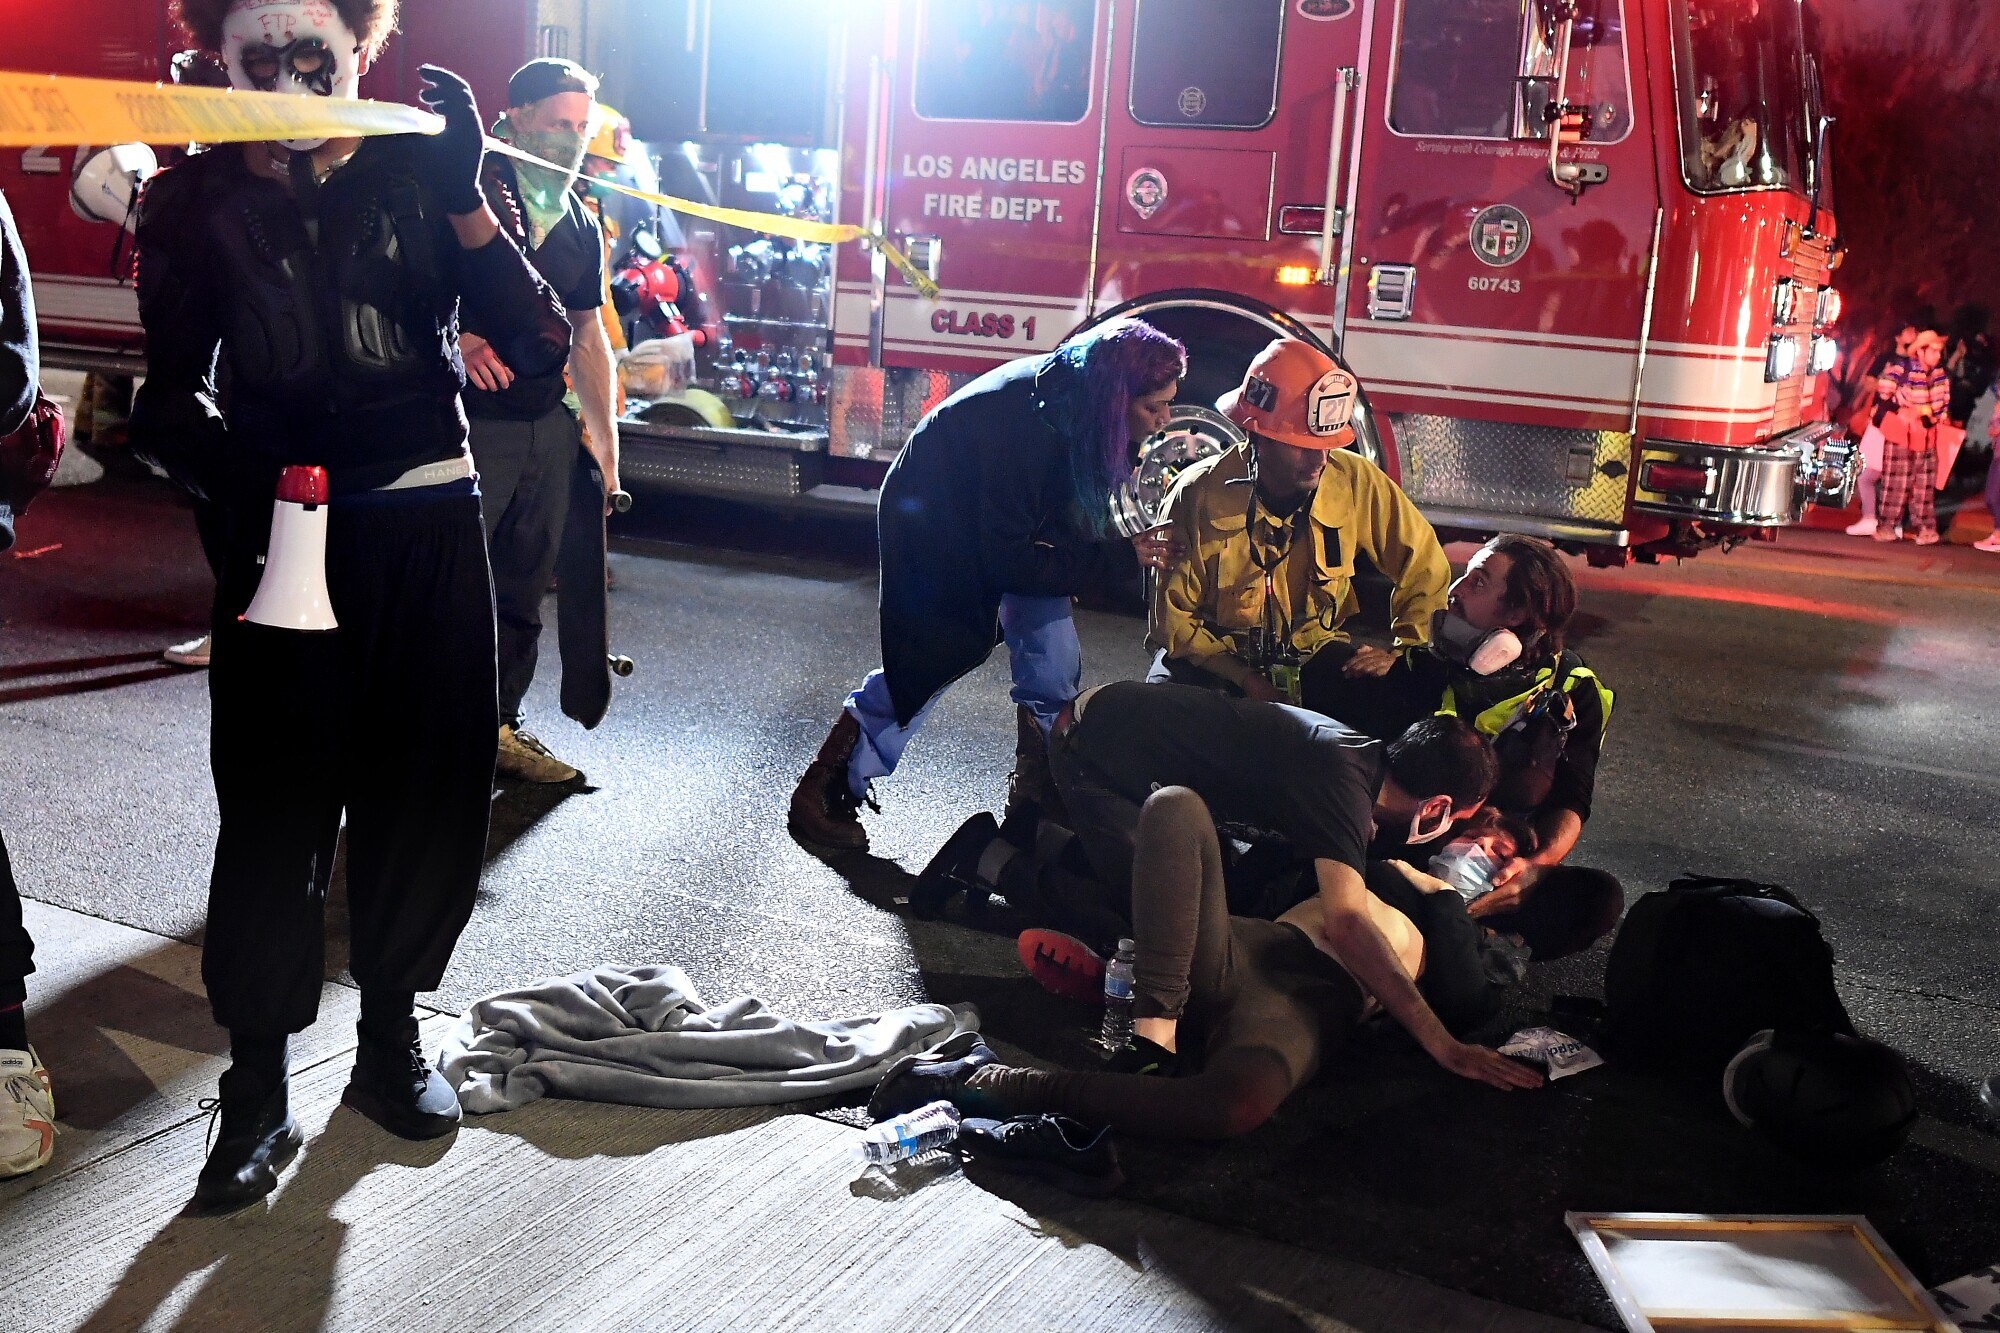 Paramedics arrive after a protester was hit by a truck in Hollywood